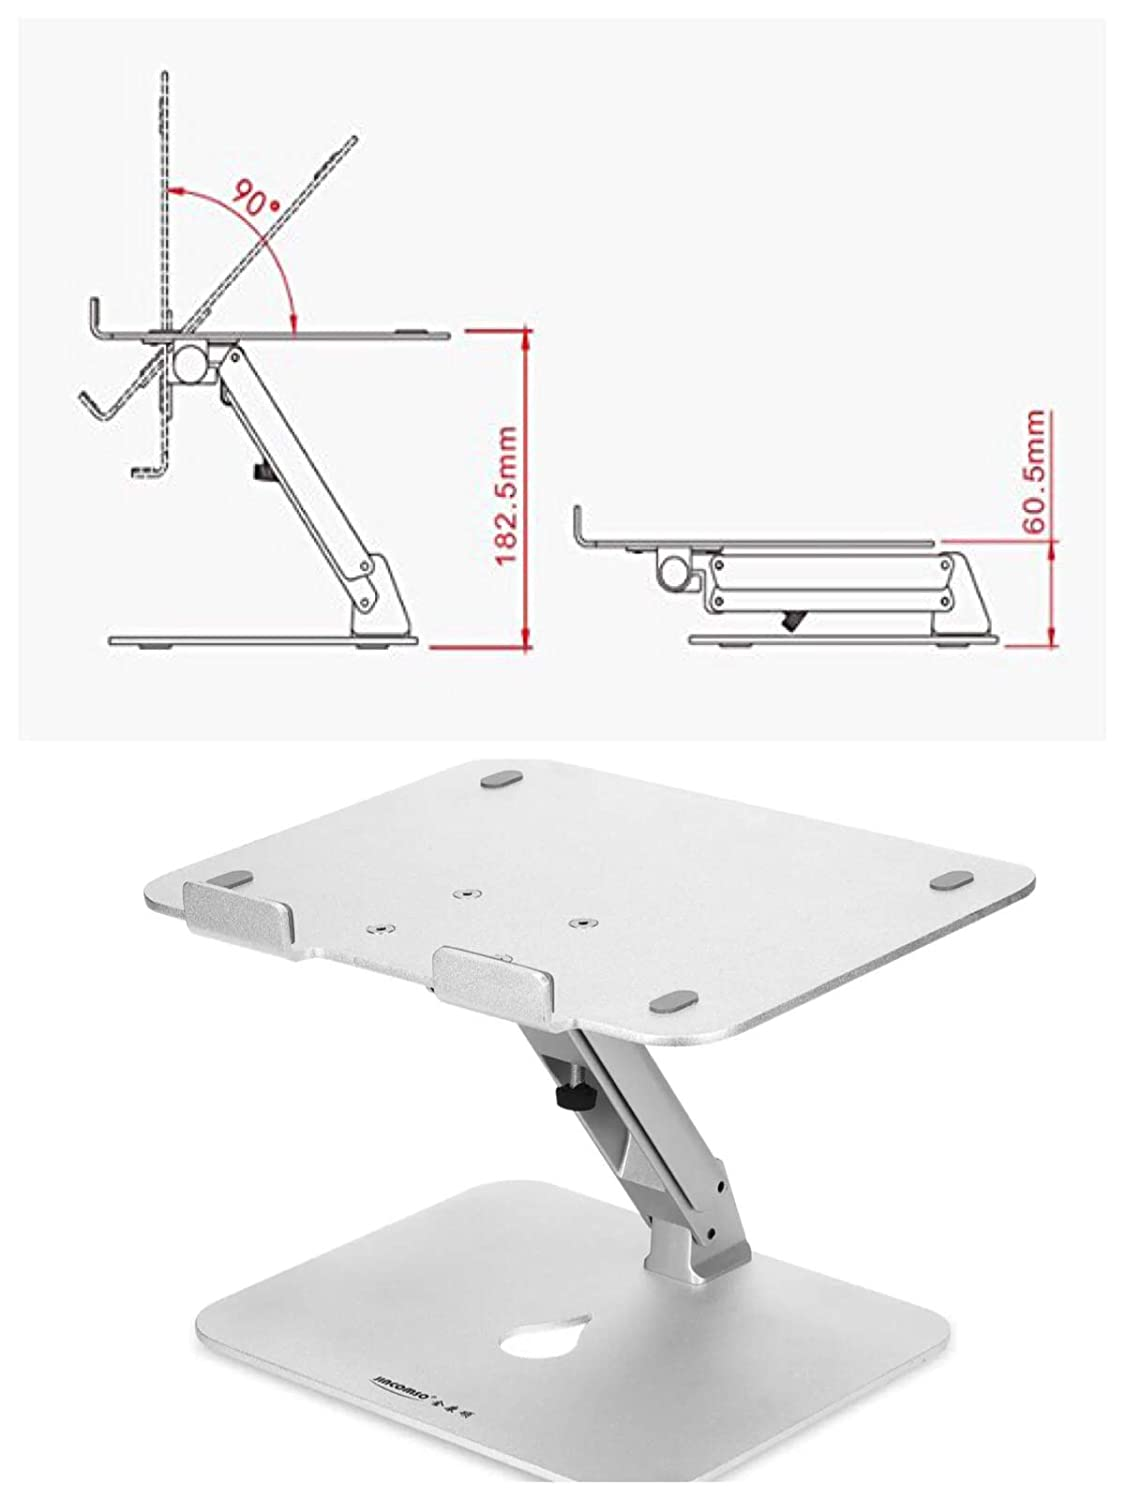 laptop screen wiring diagram box wiring diagram Drone Wire Diagram BEC amazon taide portable adjustable laptop stand new design guitar wiring diagrams amazon taide portable adjustable laptop